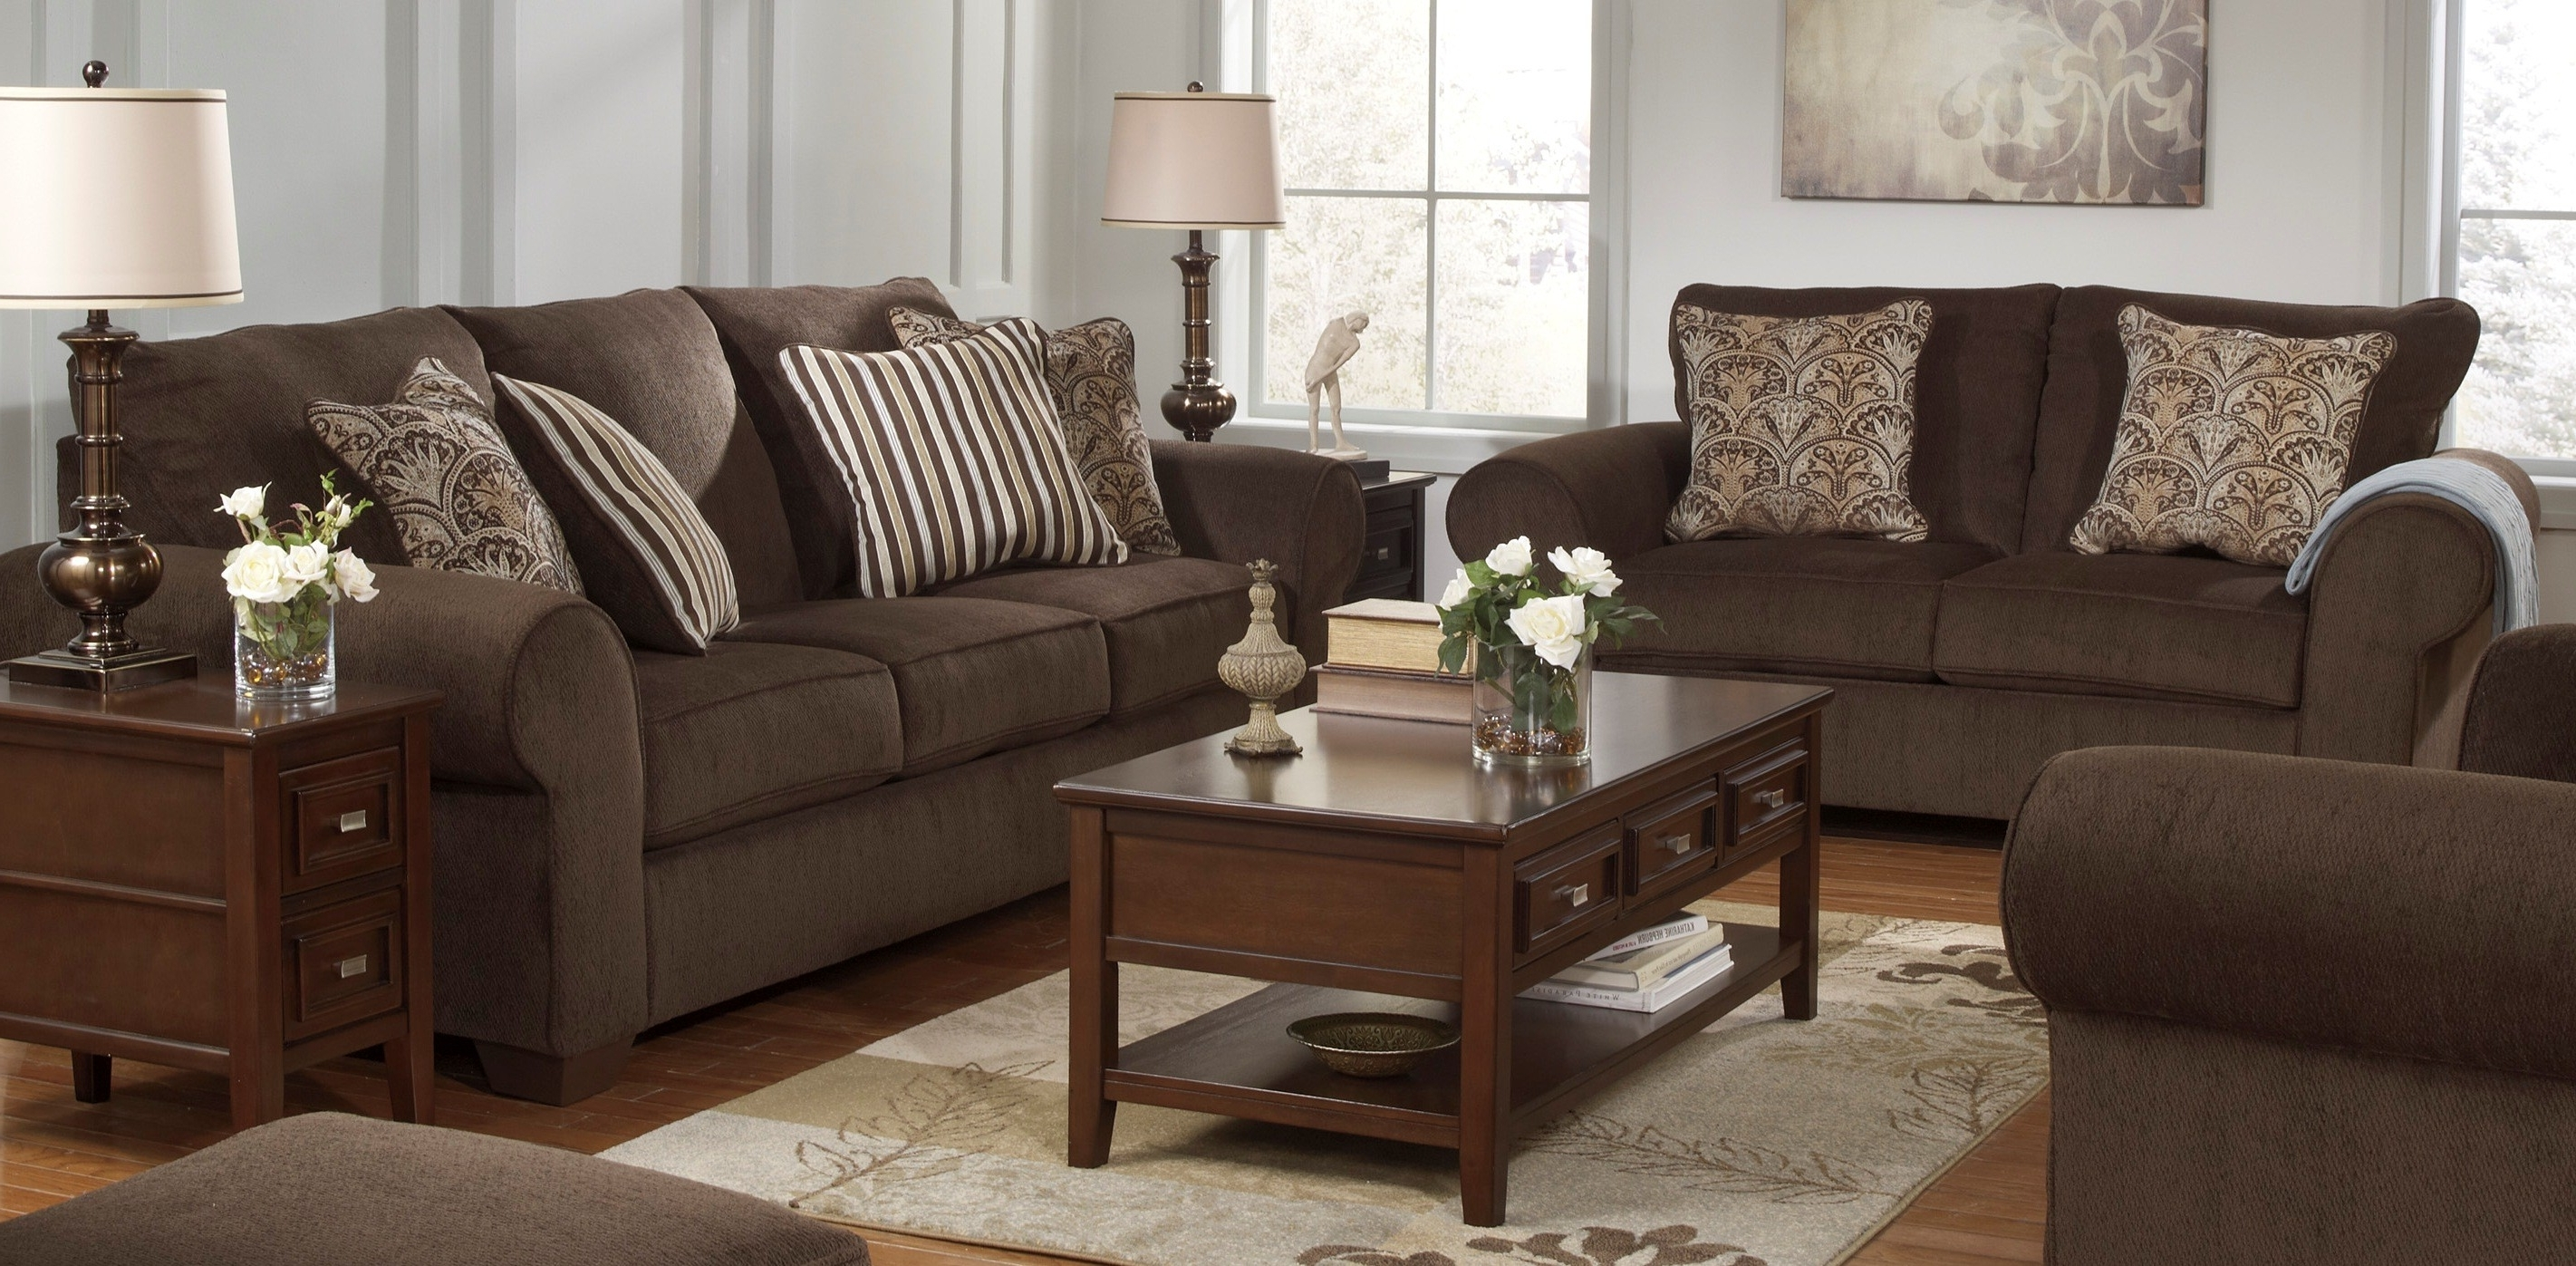 Most Popular Living Room Sofa Chairs Regarding Uncategorized (View 7 of 15)